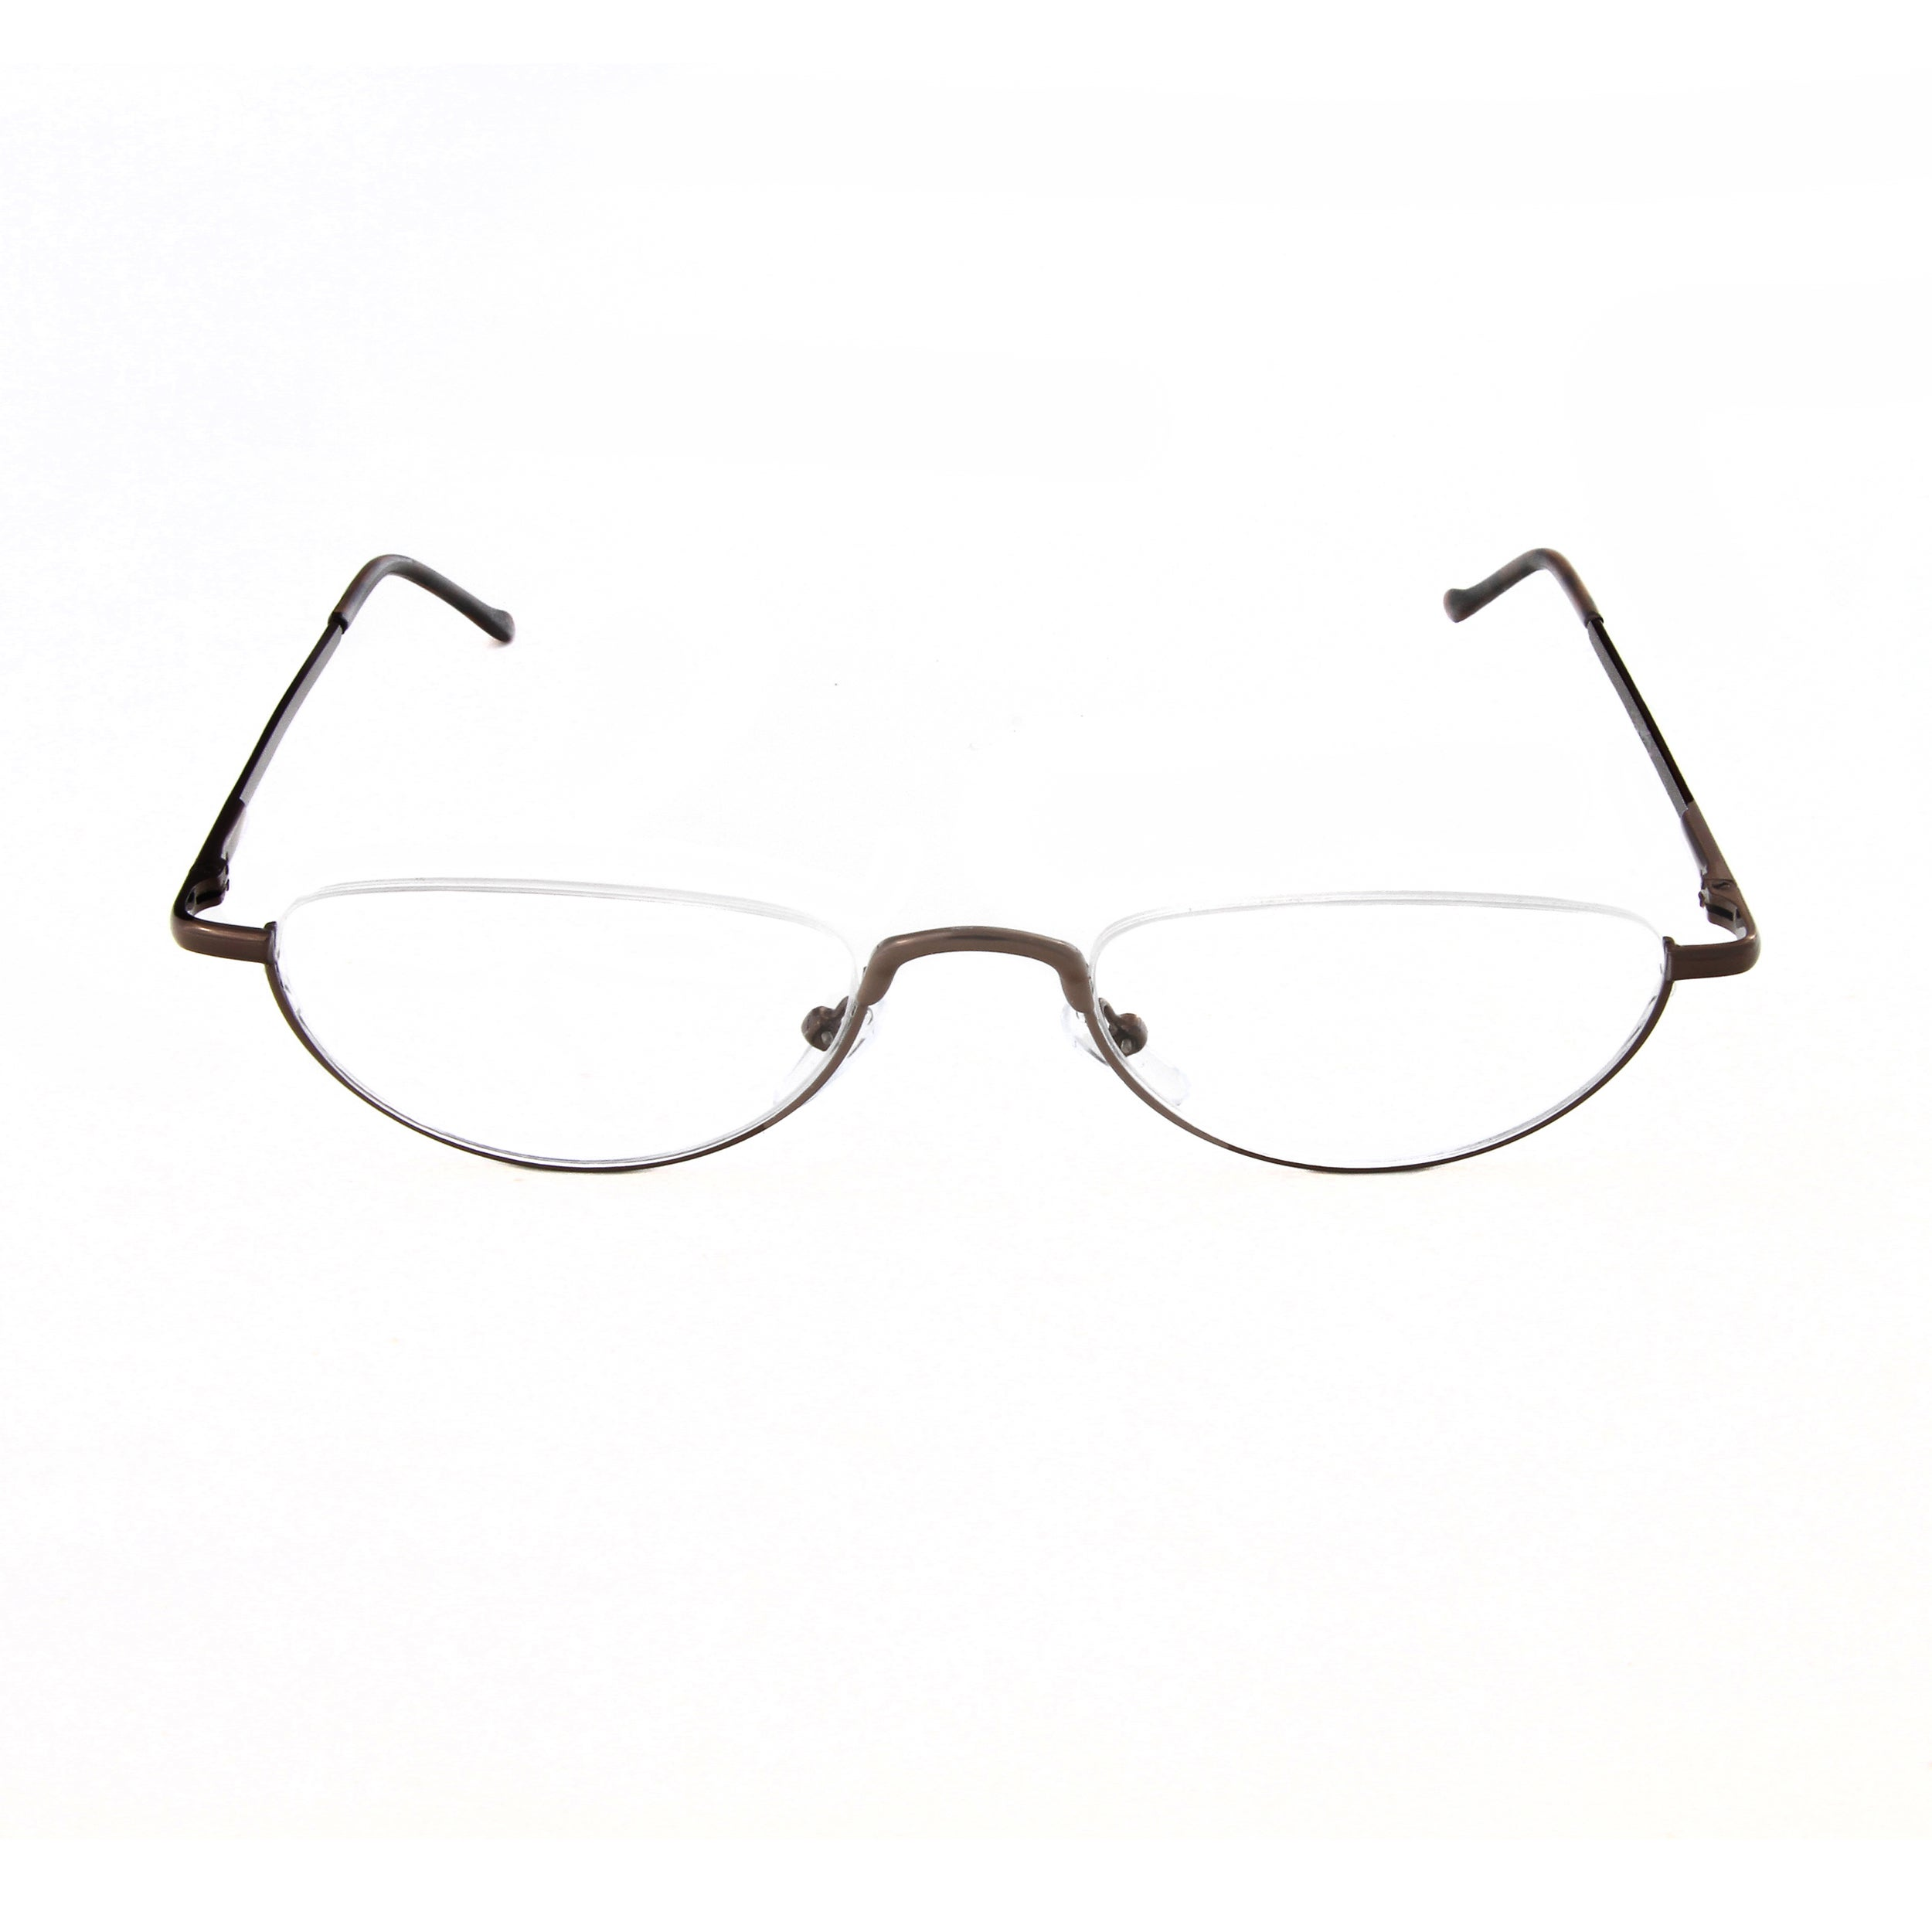 f955537fa88 Shop Hot Optix Unisex Oval Semi-rimless Reading Glasses - Free Shipping On  Orders Over  45 - Overstock - 12502986